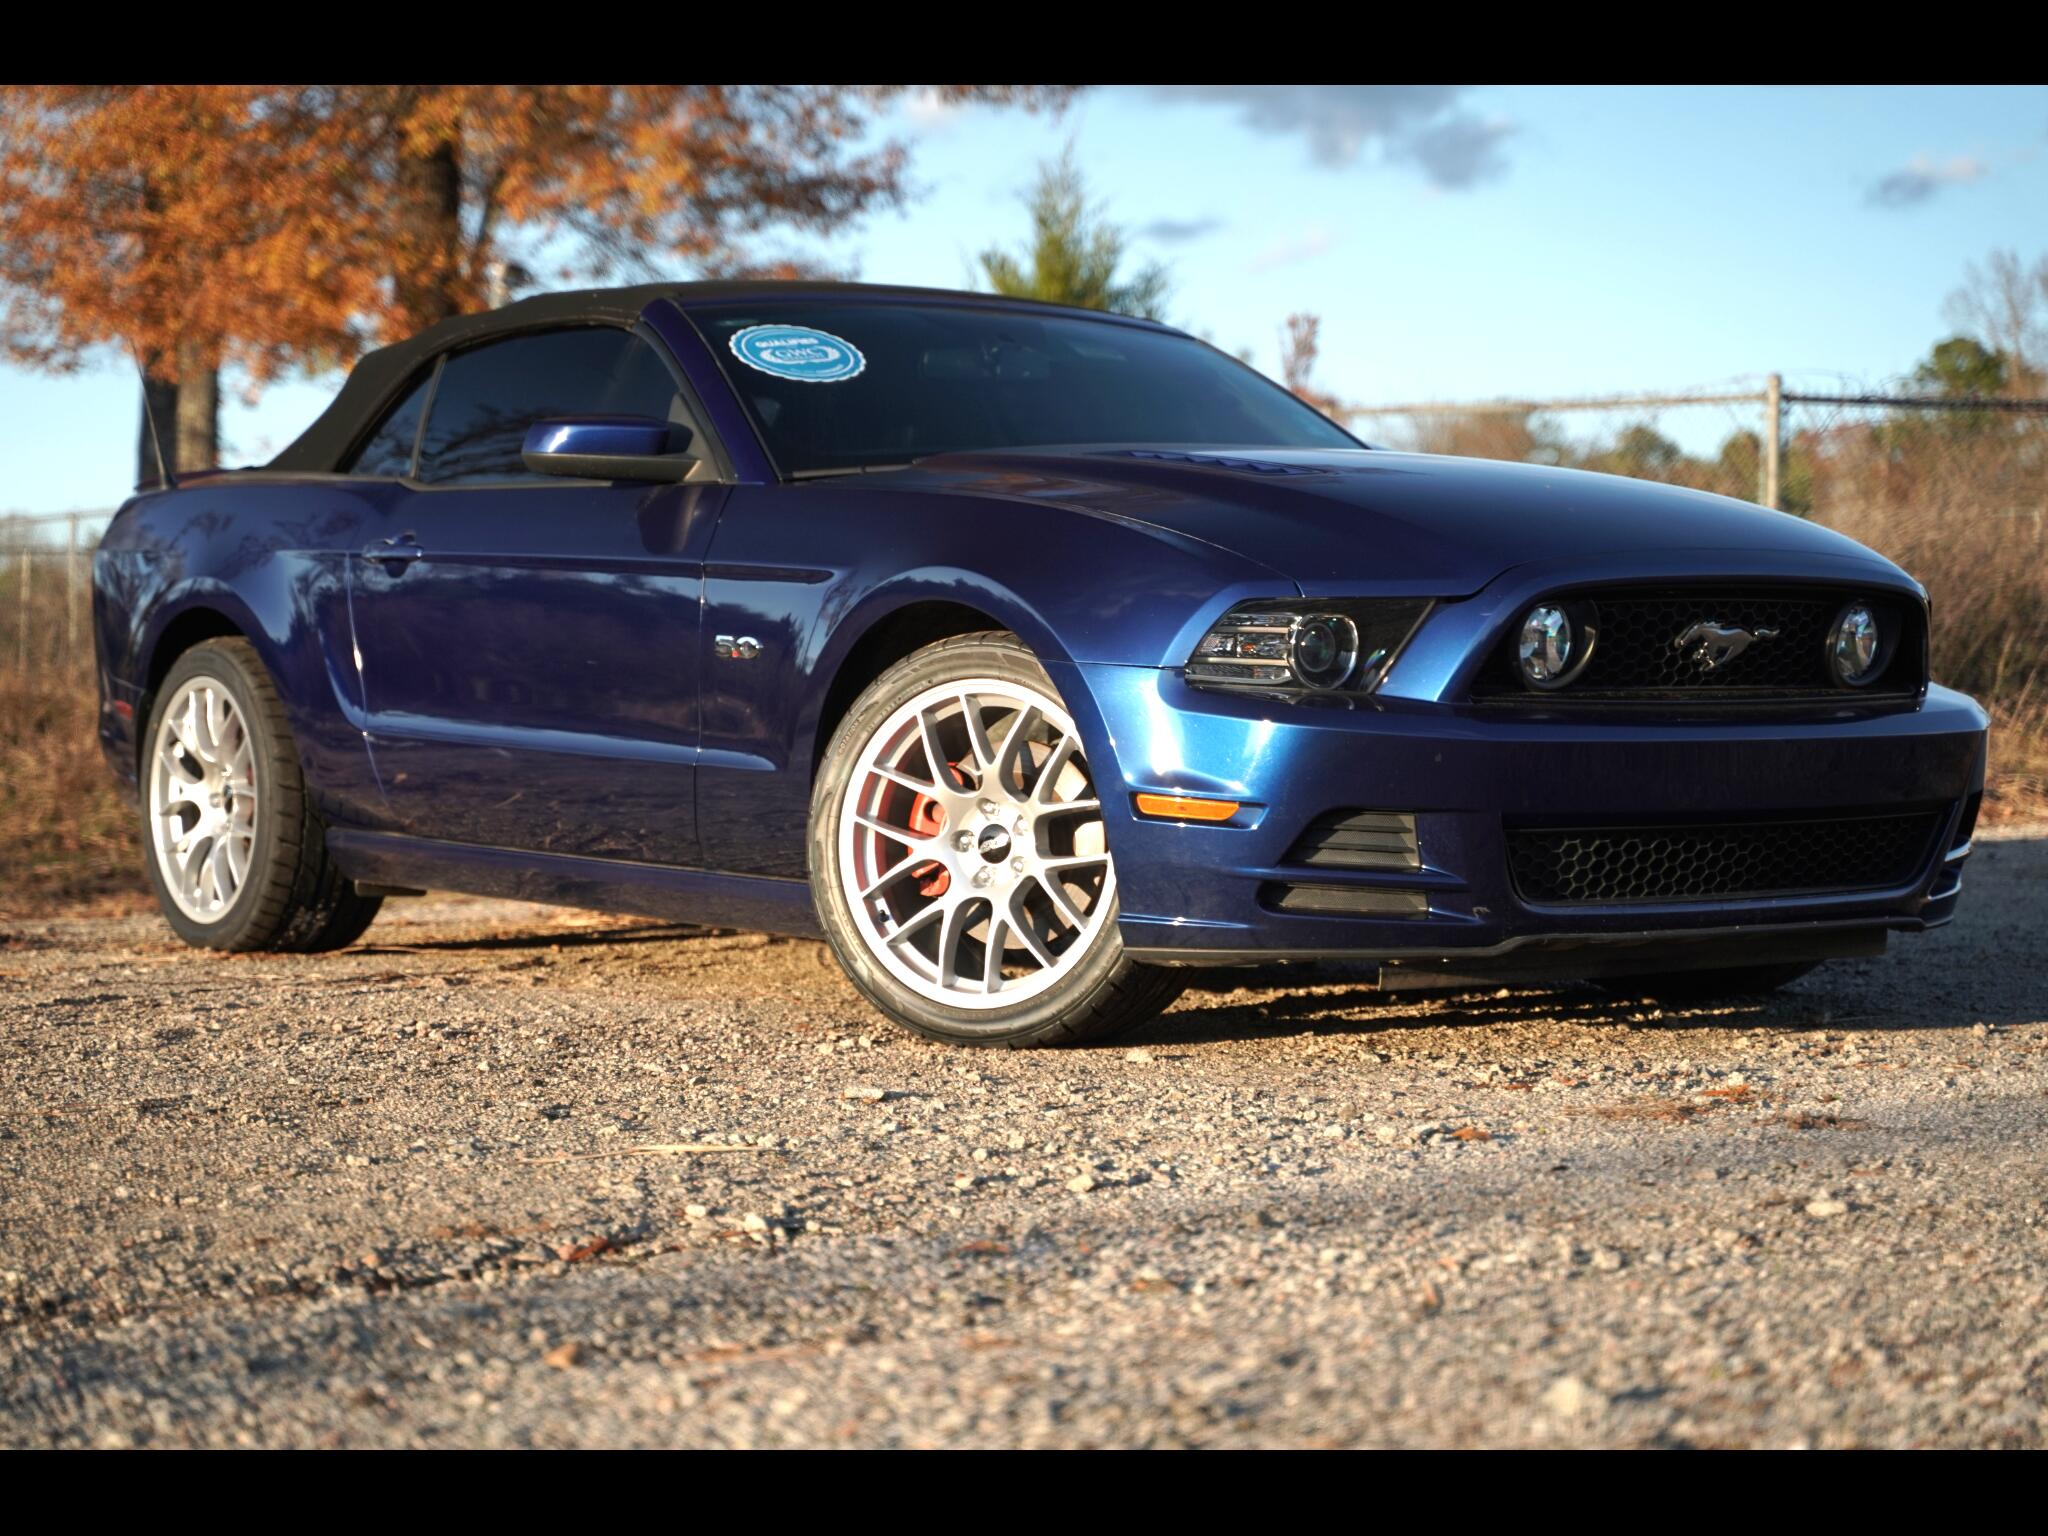 Used 2013 Ford Mustang Gt 5 0 Coyote Convertible For Sale In